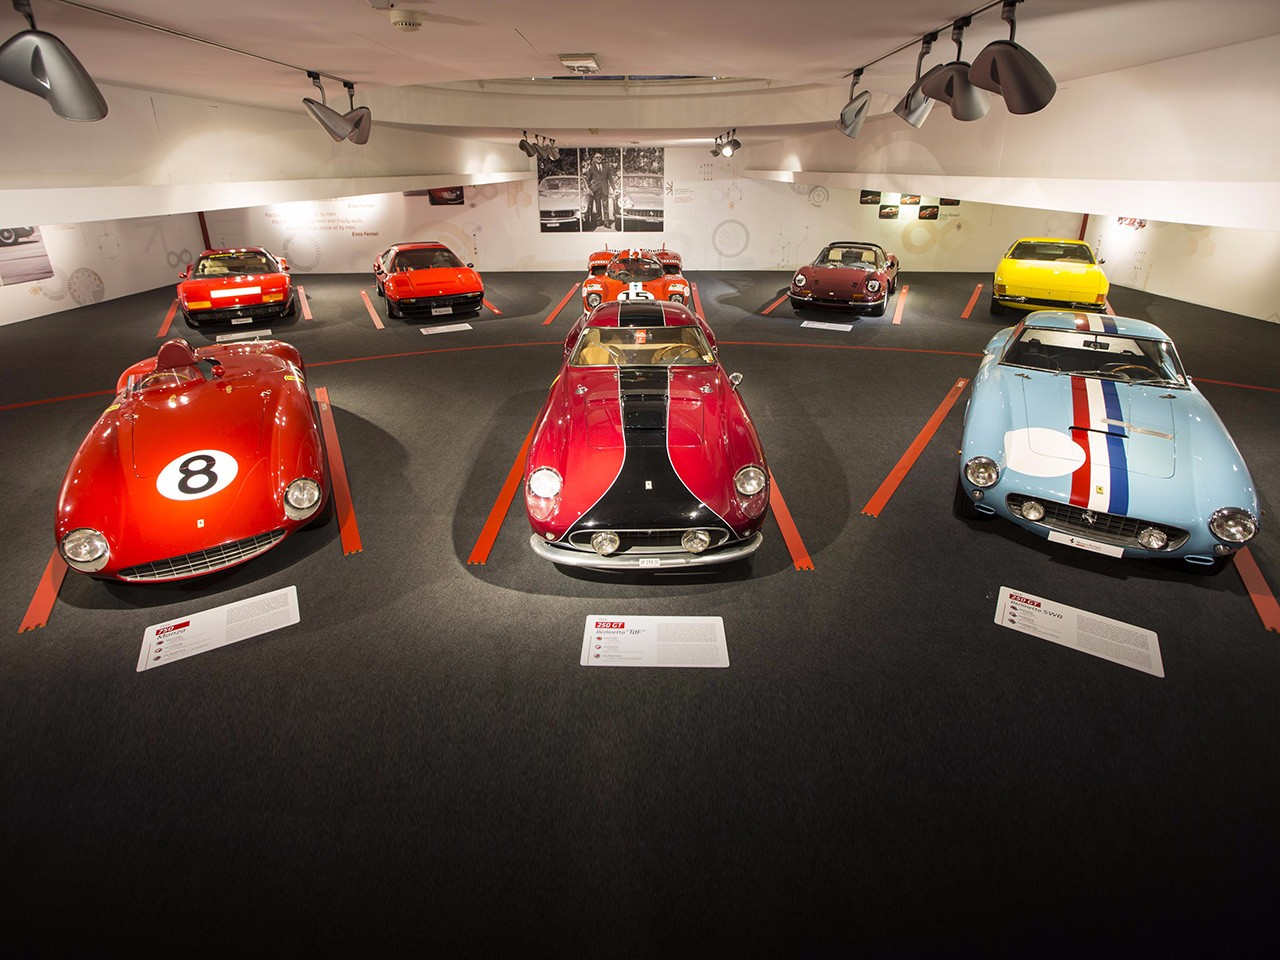 Two exhibitions at Maranello Museum